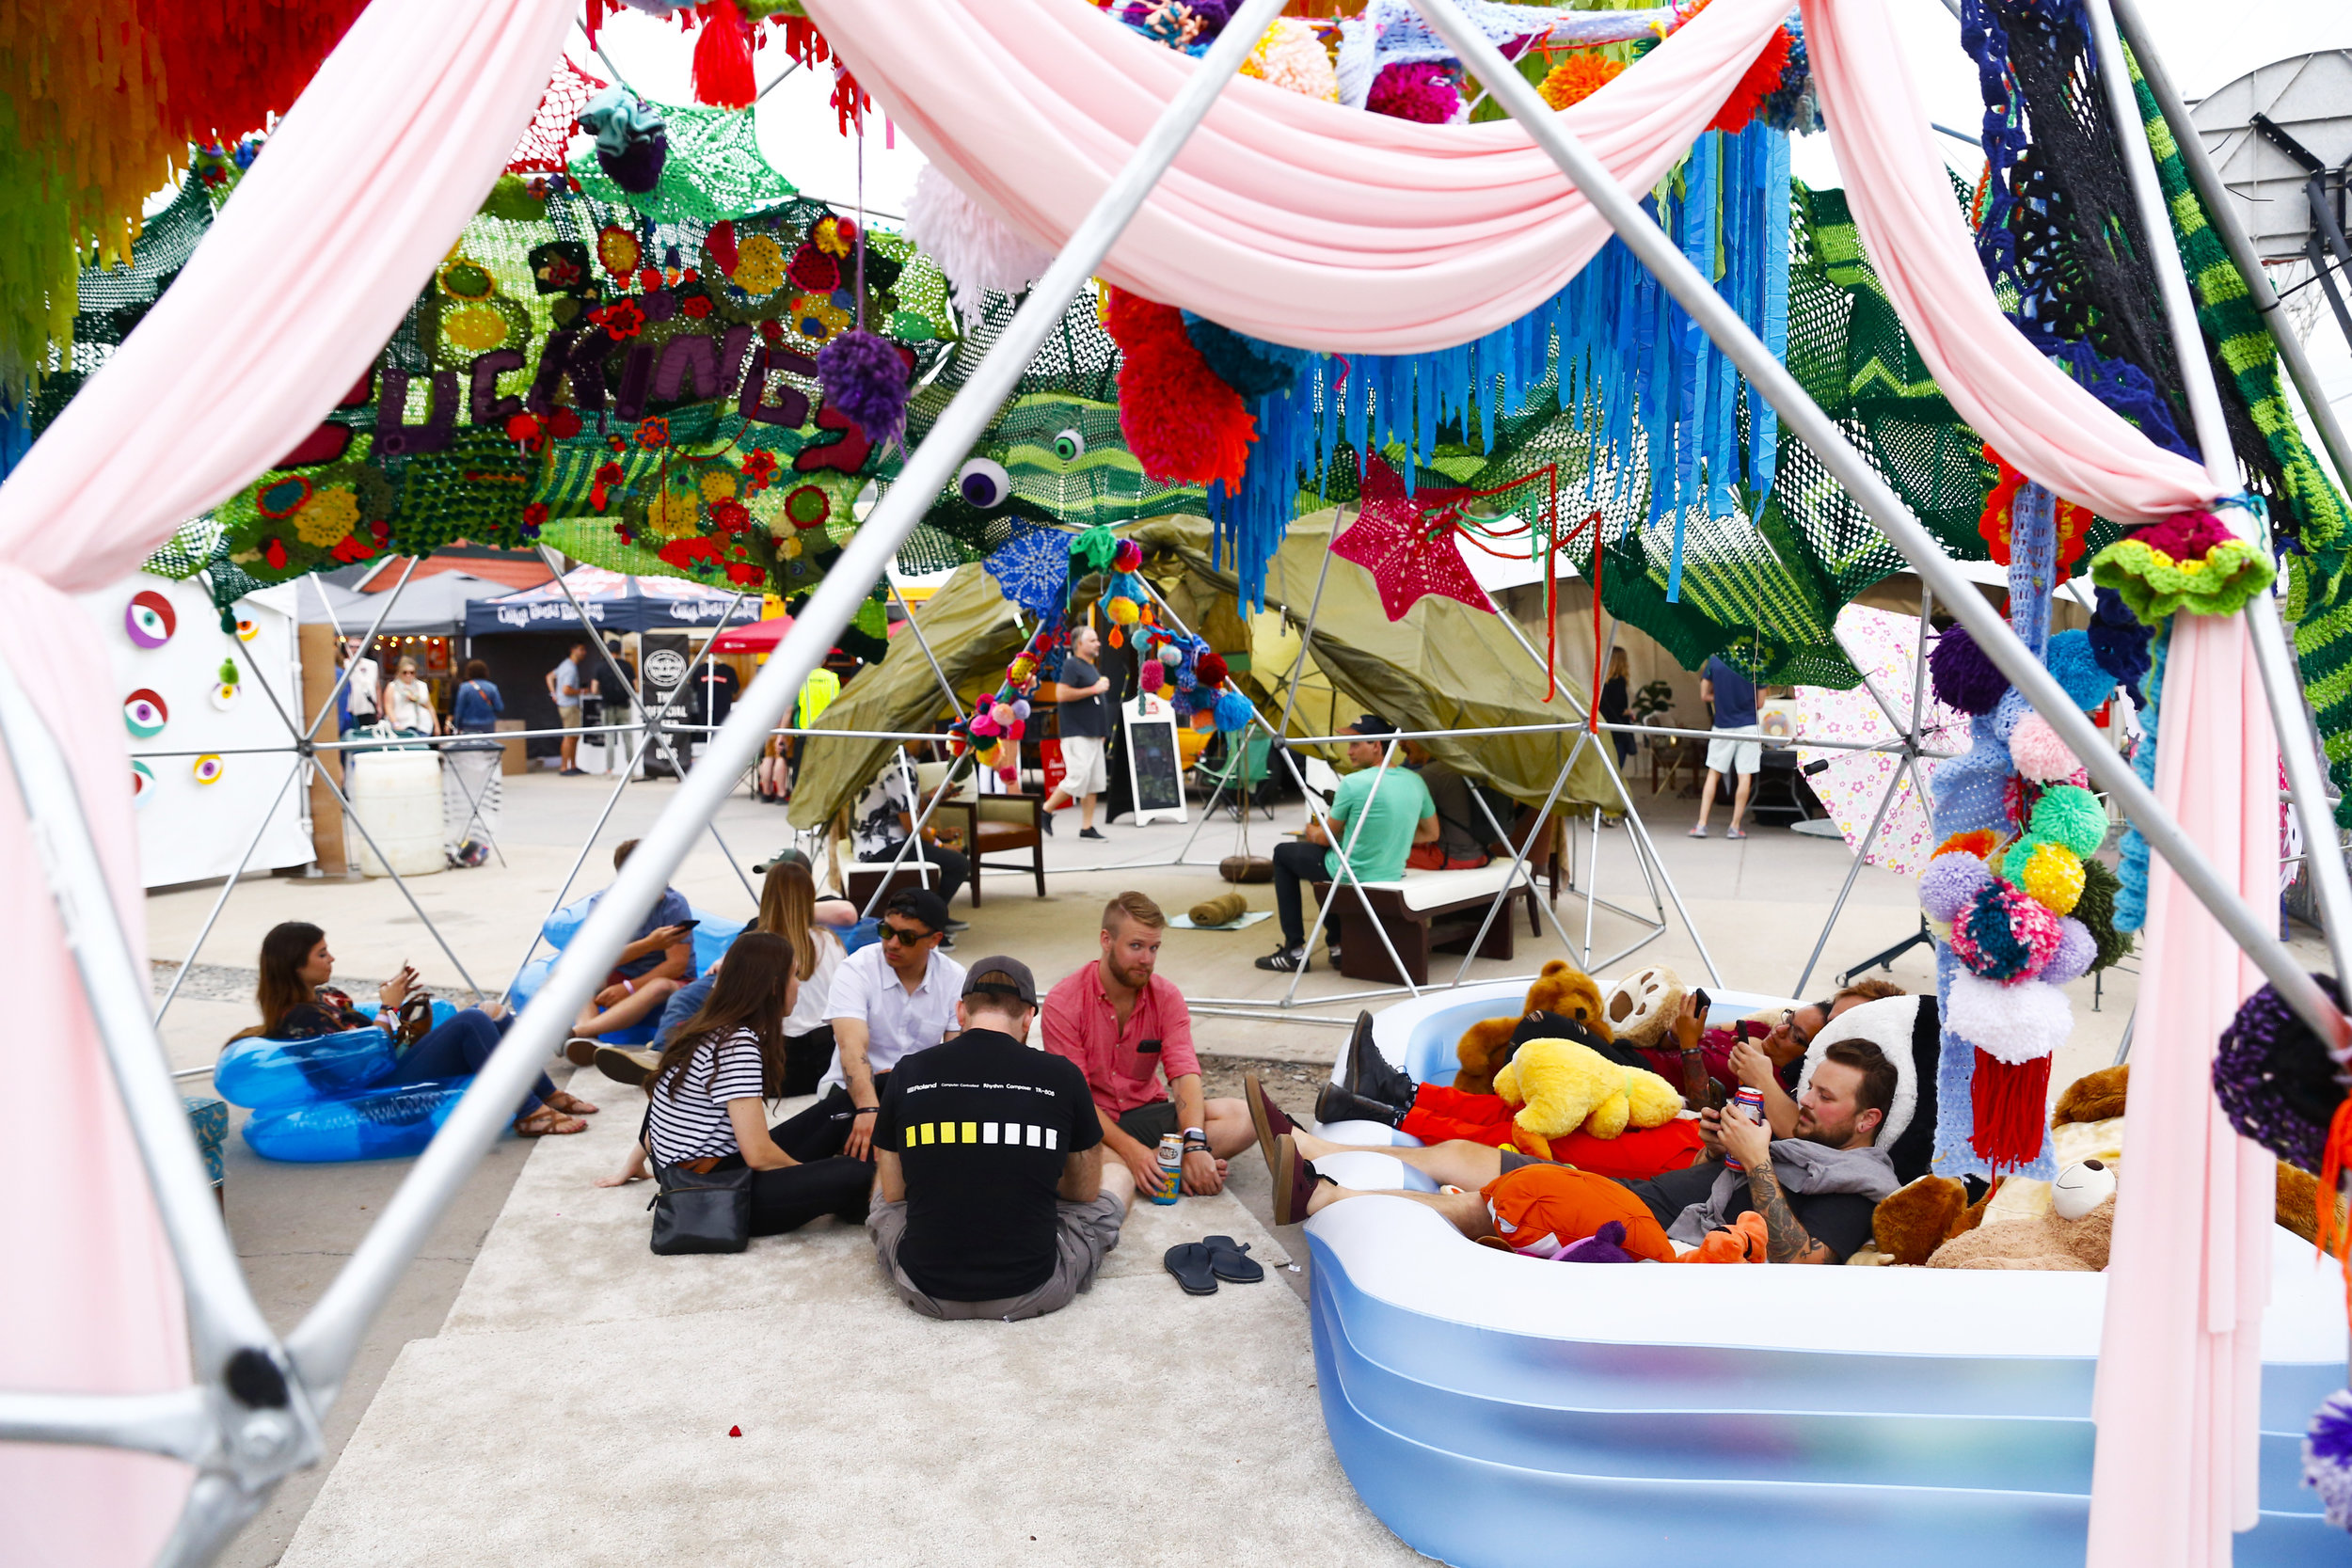 The Imagination Stage provided with some adequate amenities during the fest. (Photo Credit: Aly McClaran)